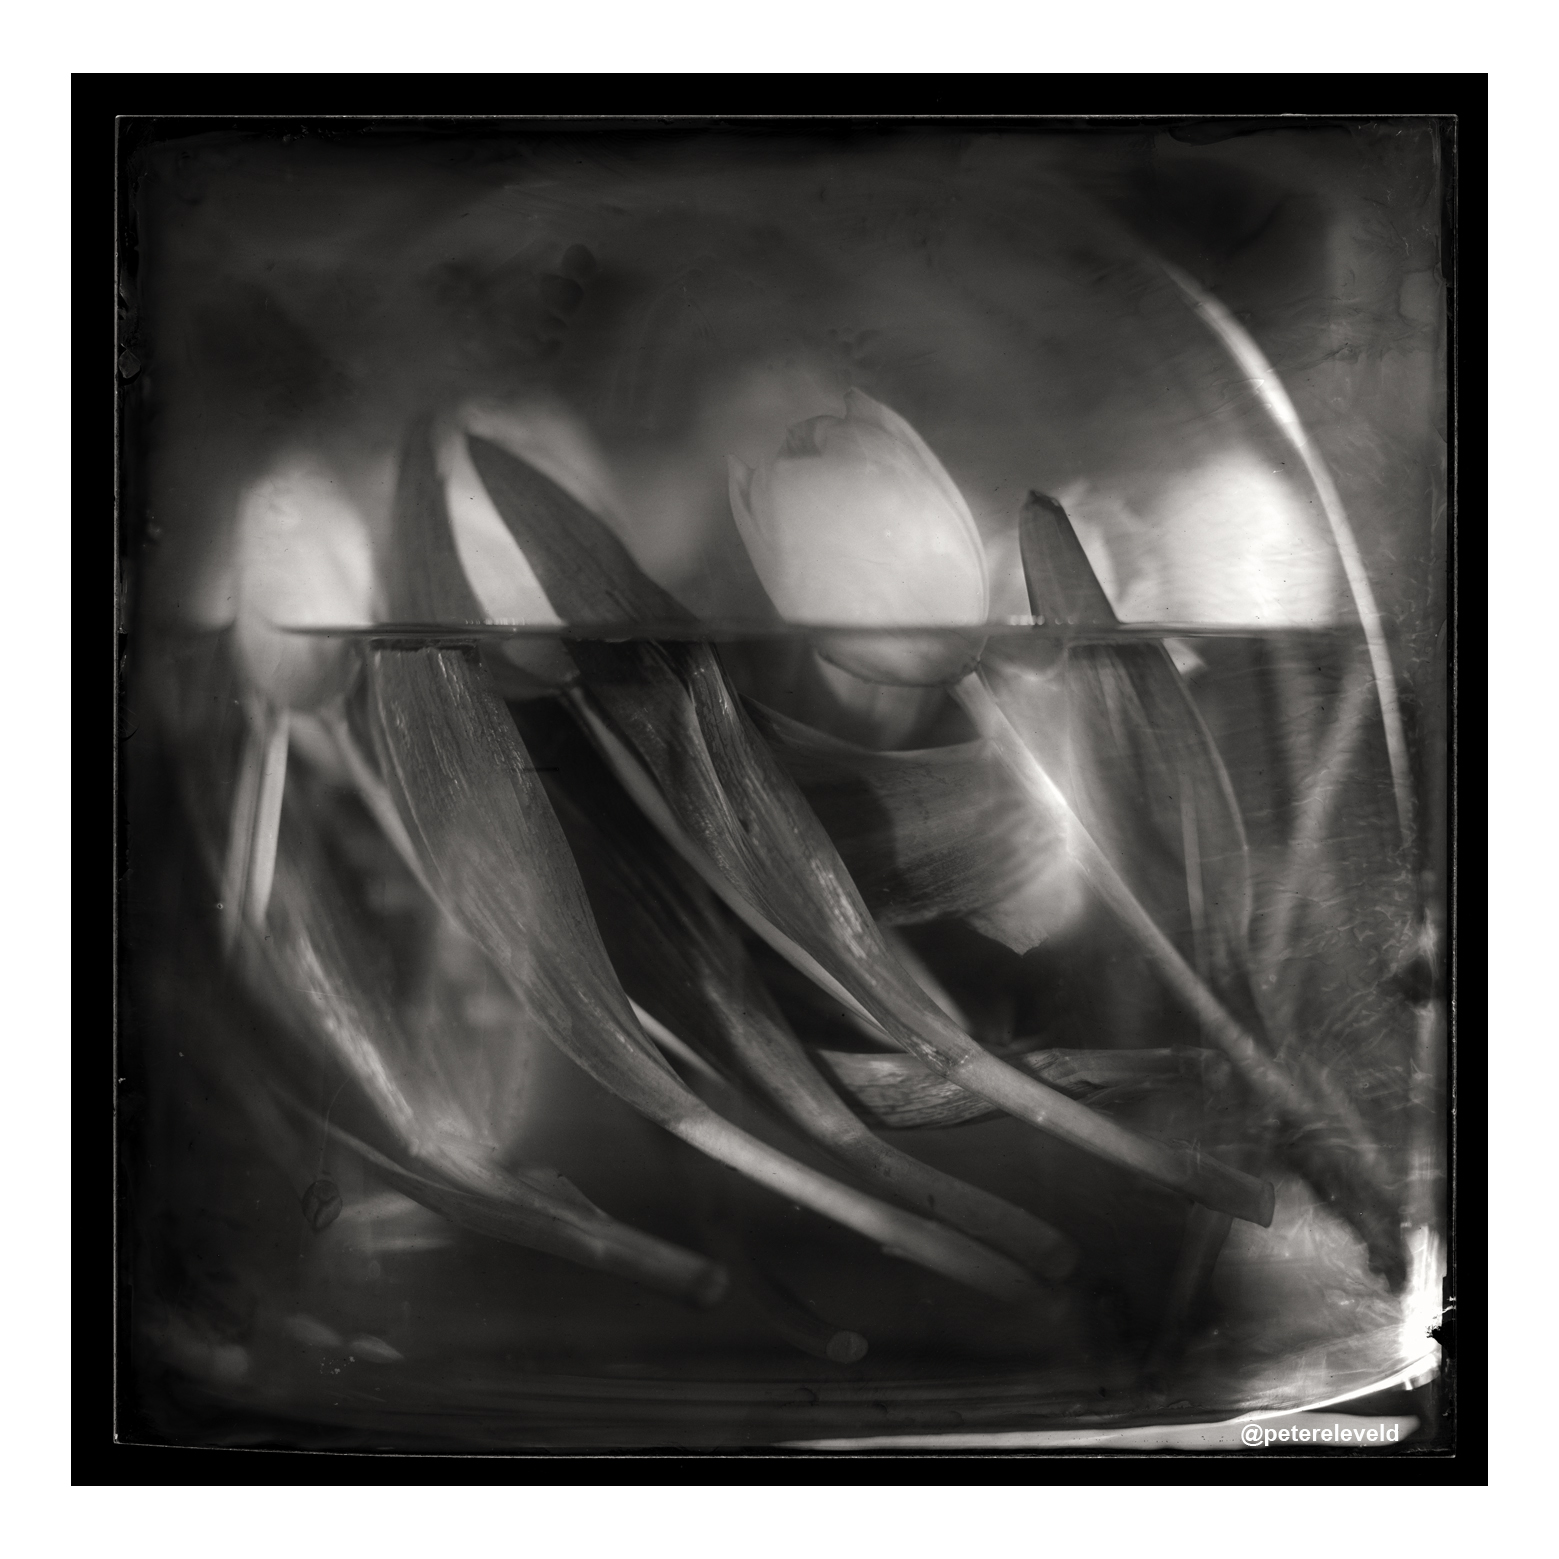 WetPlate Artwork for Sale through, Artsper.com